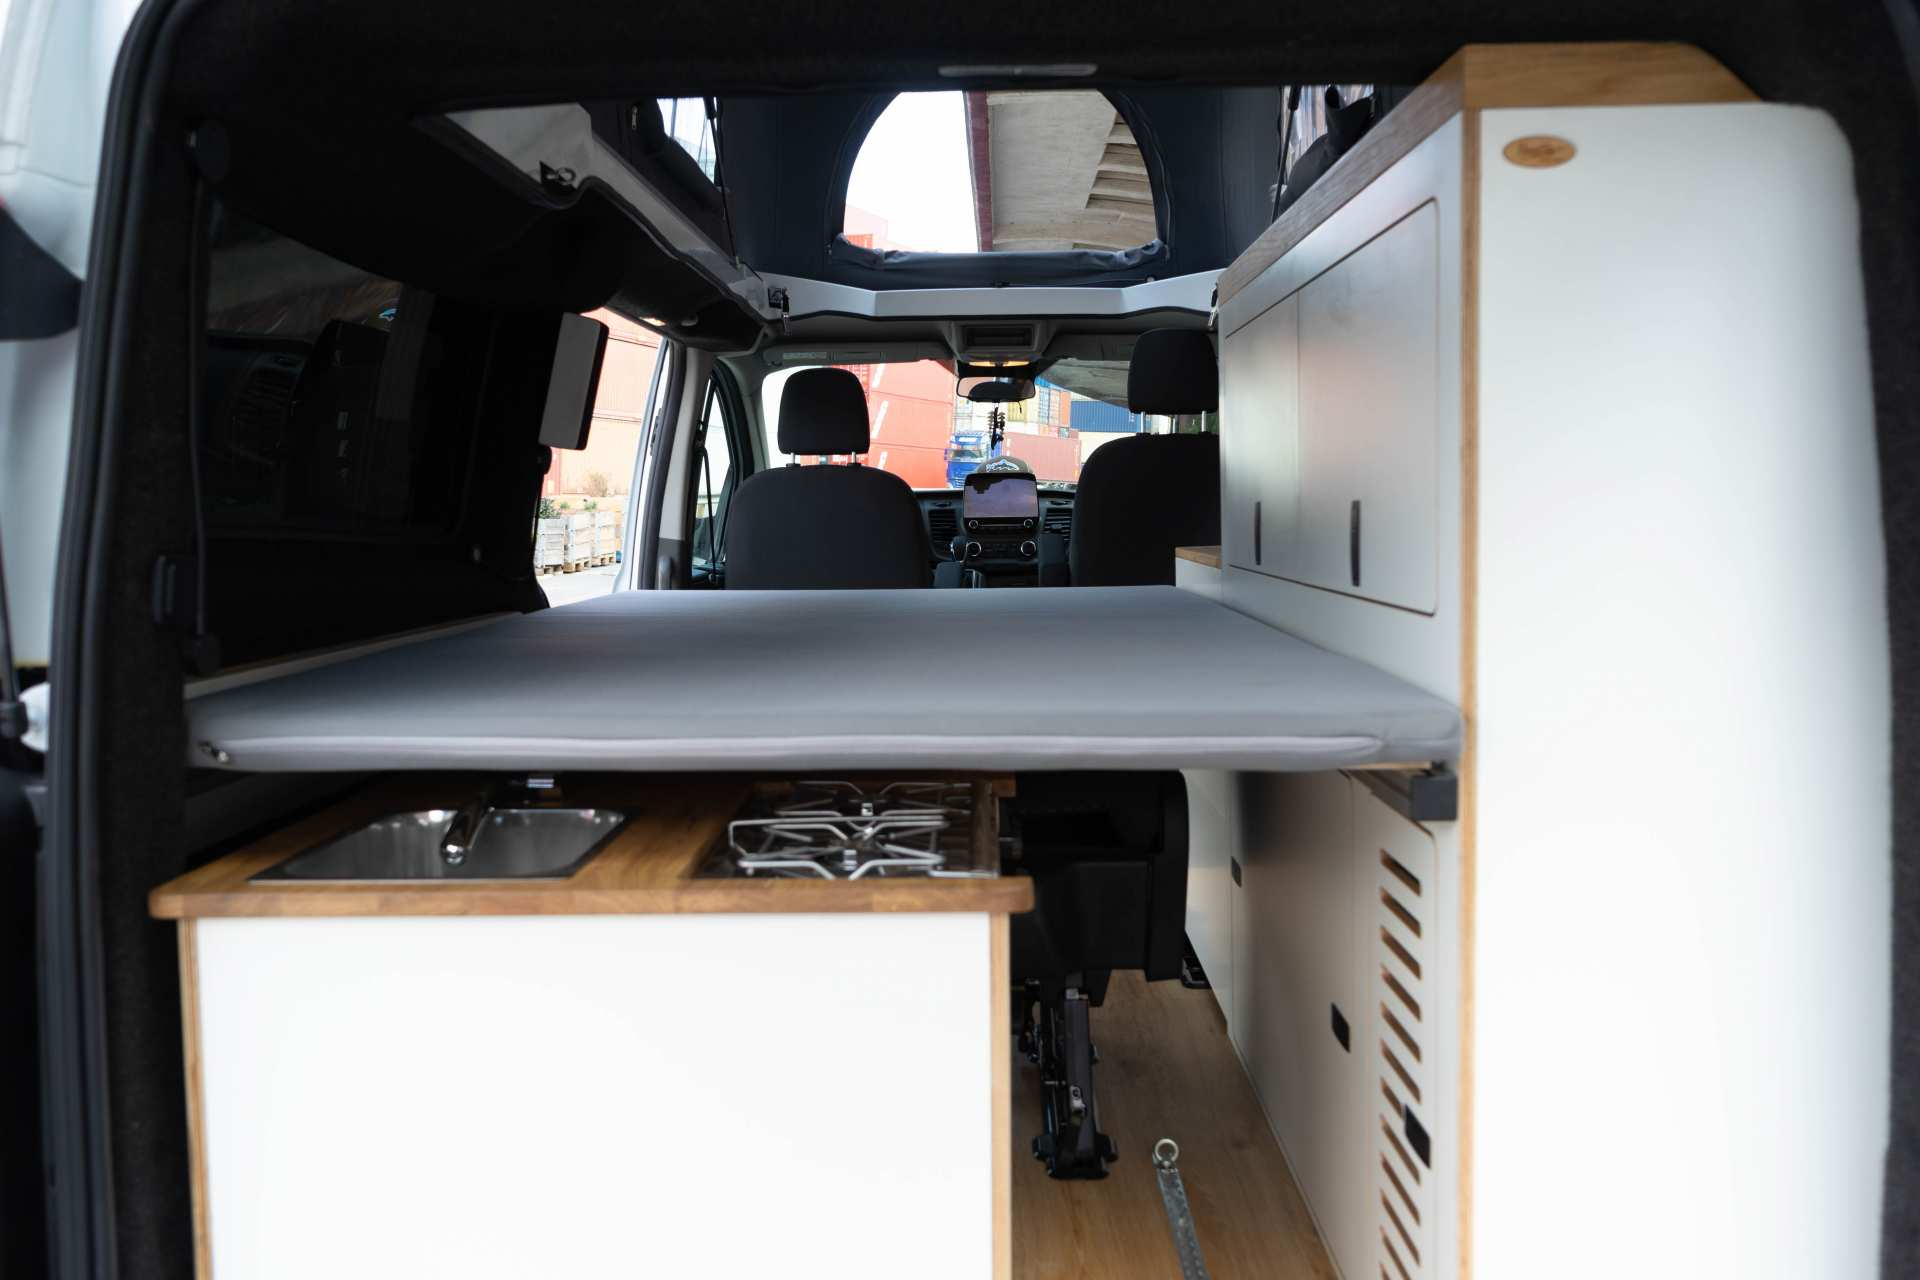 Individualausbau: EXPEDITION Ford Transit Custom, langer Radstand - 13